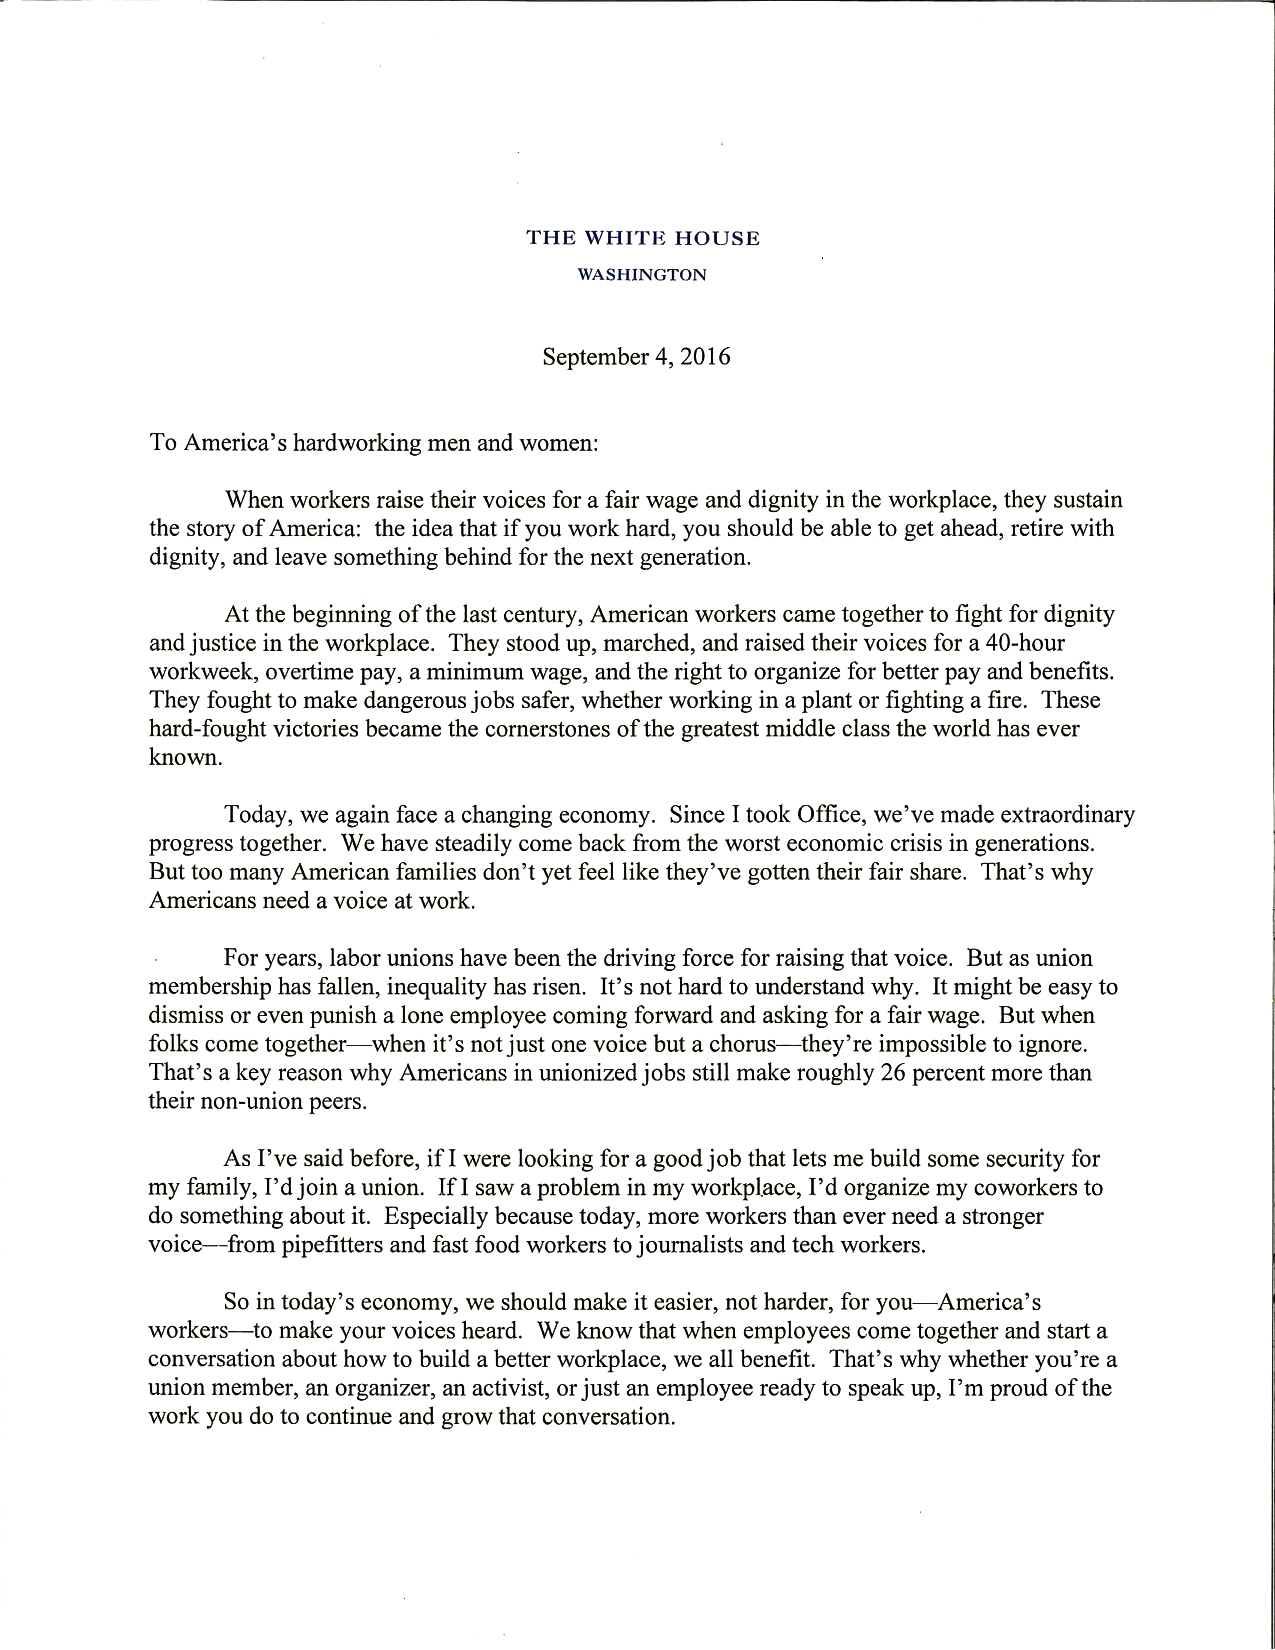 President Obama's letter on Labor Day (1 of 2)